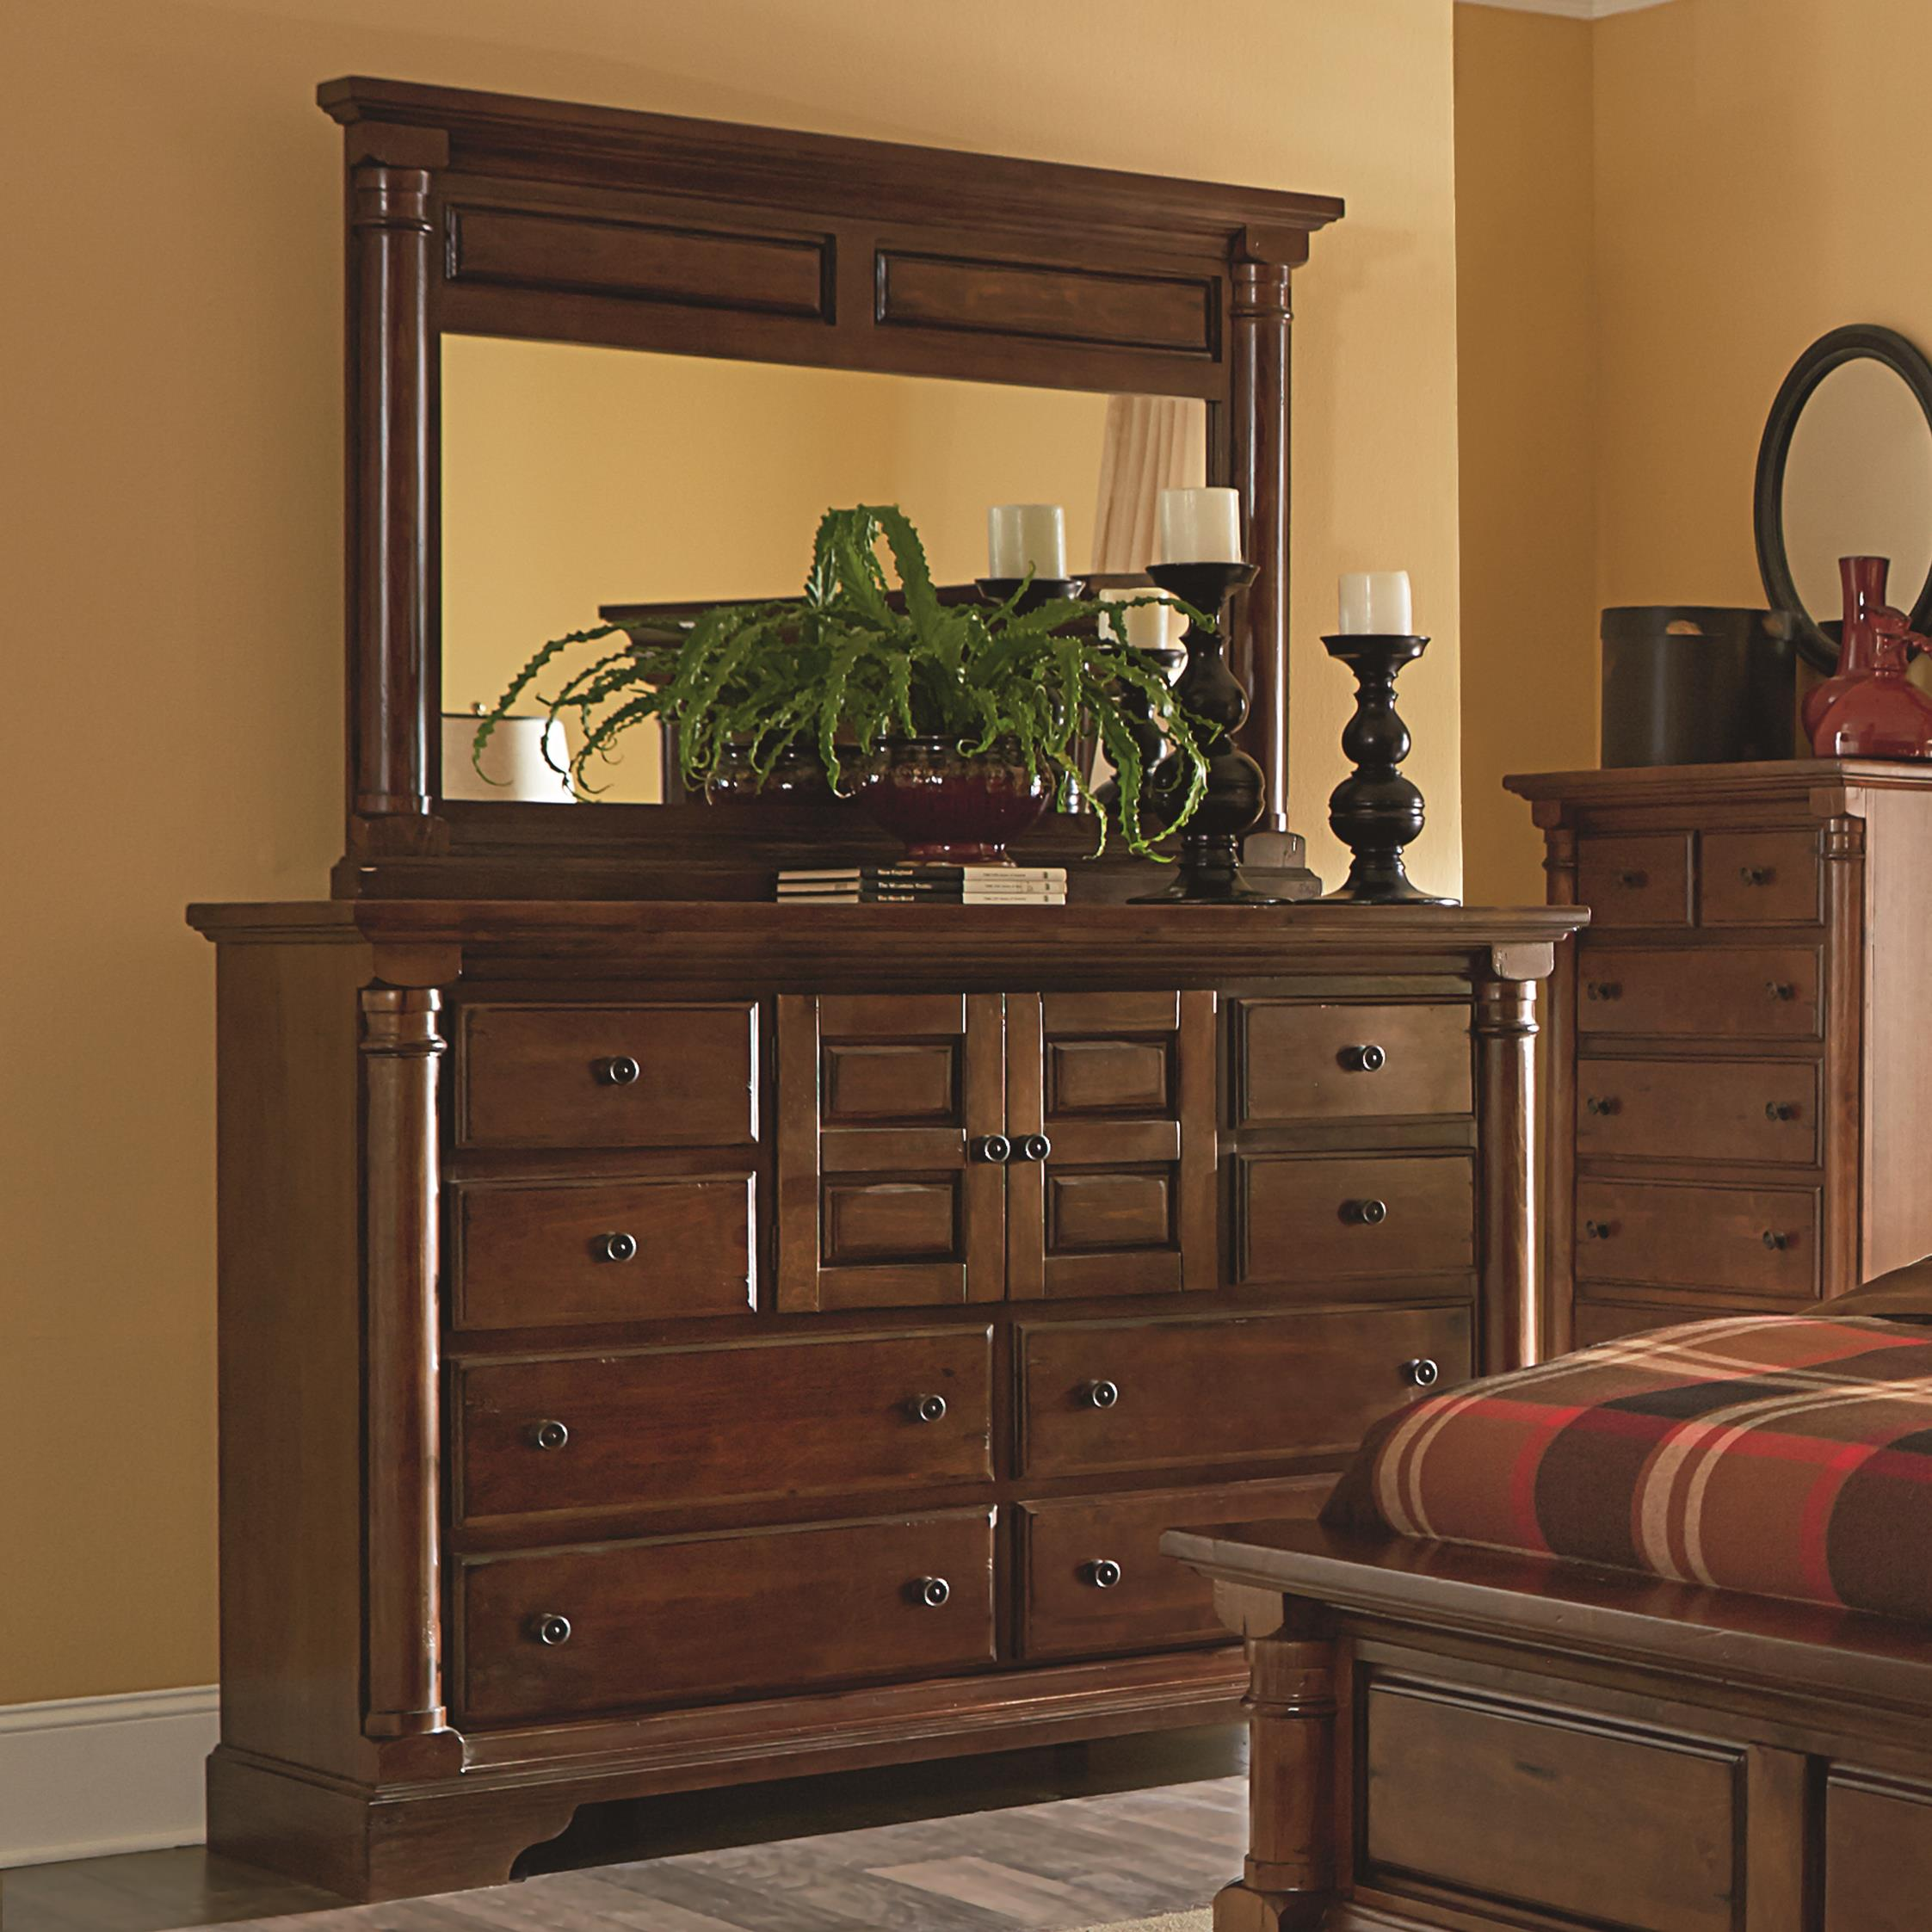 Progressive Furniture Gramercy Park Dresser and Mirror - Item Number: P660-50+24